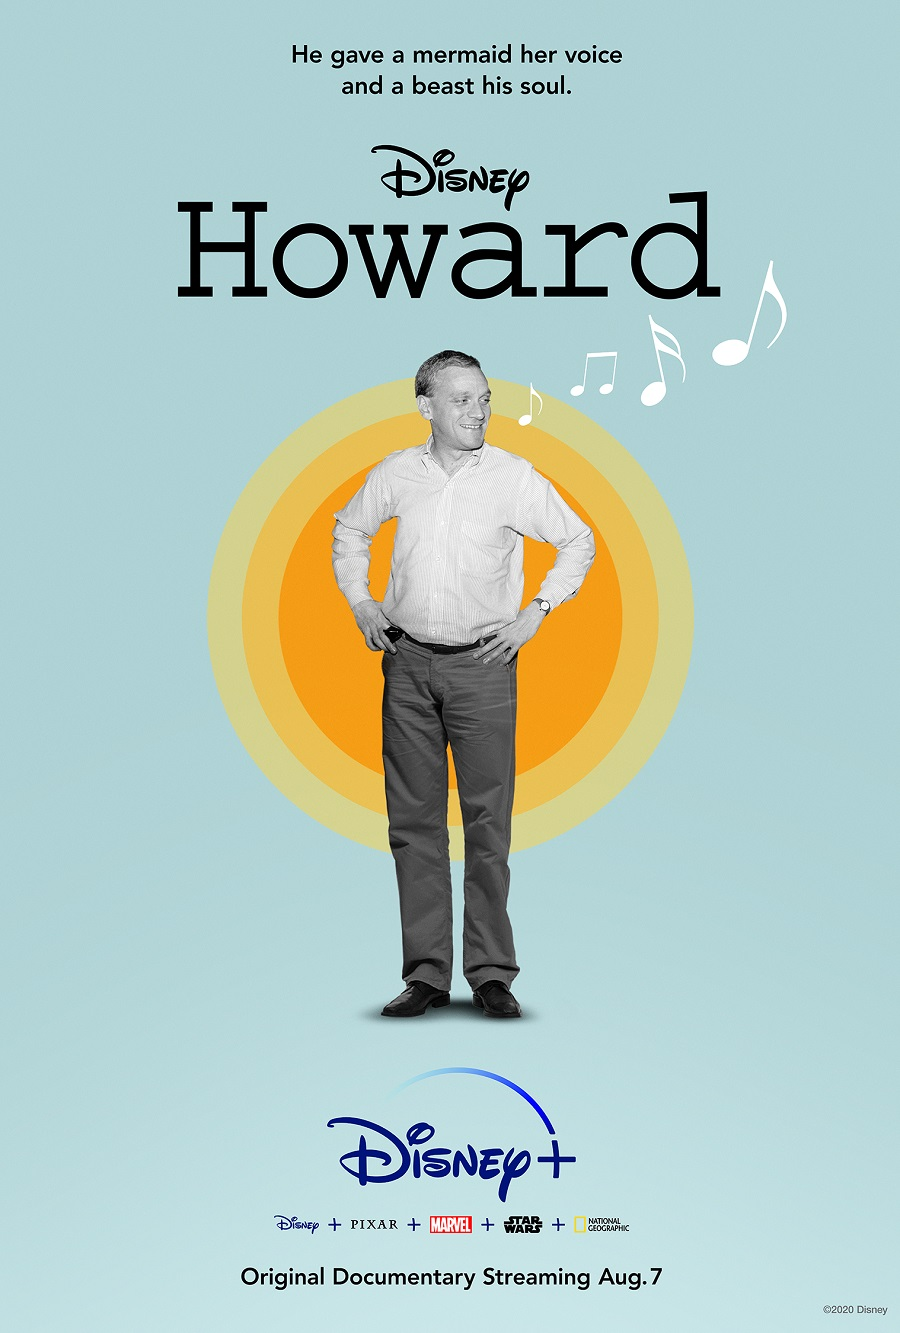 A photo of Howard Ashman on the poster for Disney+ biopic Howard.